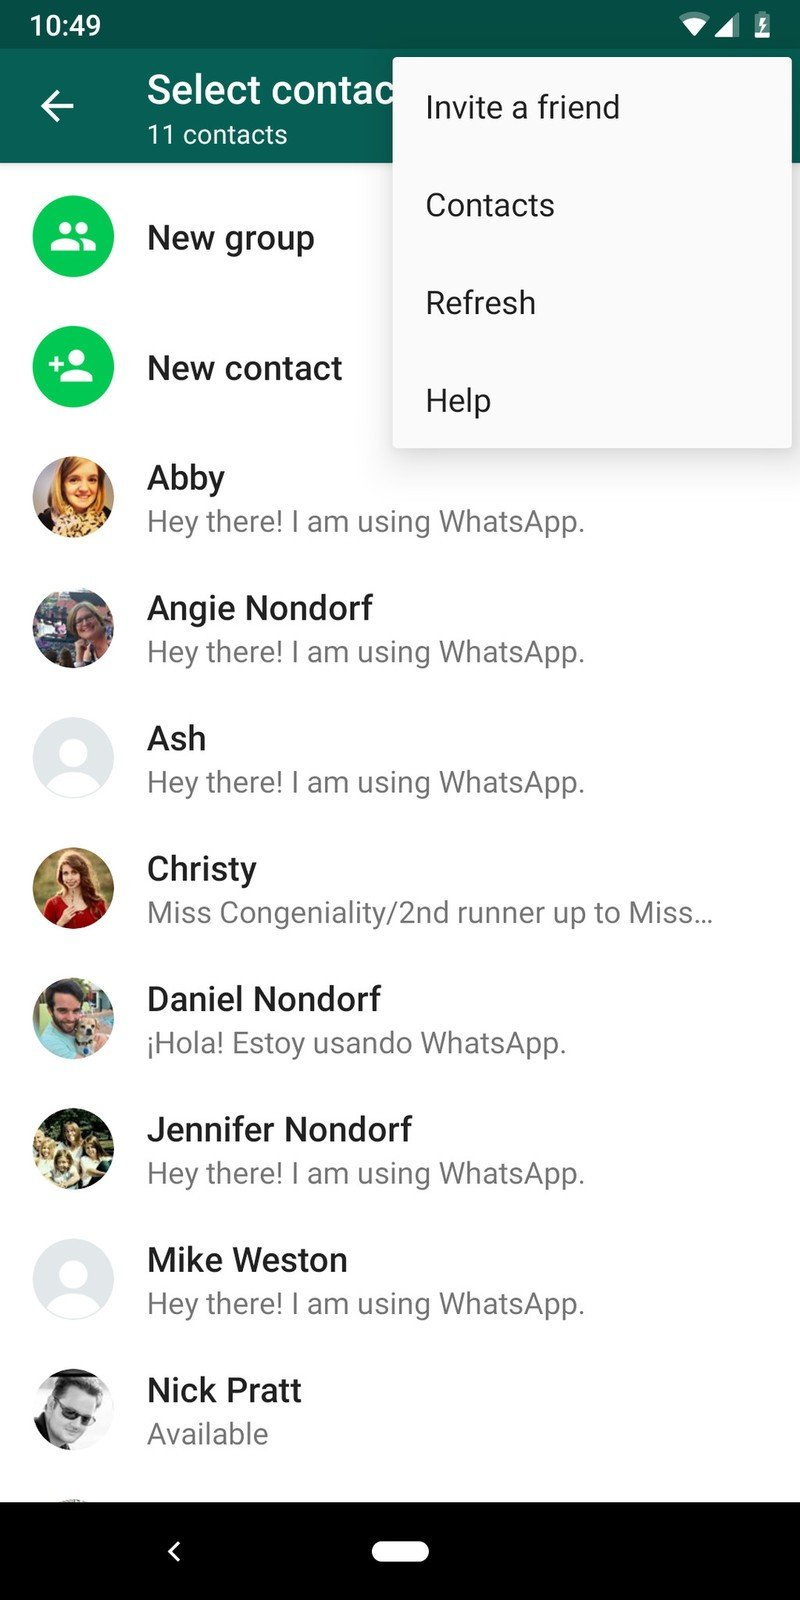 how-to-set-up-whatsapp-android-2018-16.j